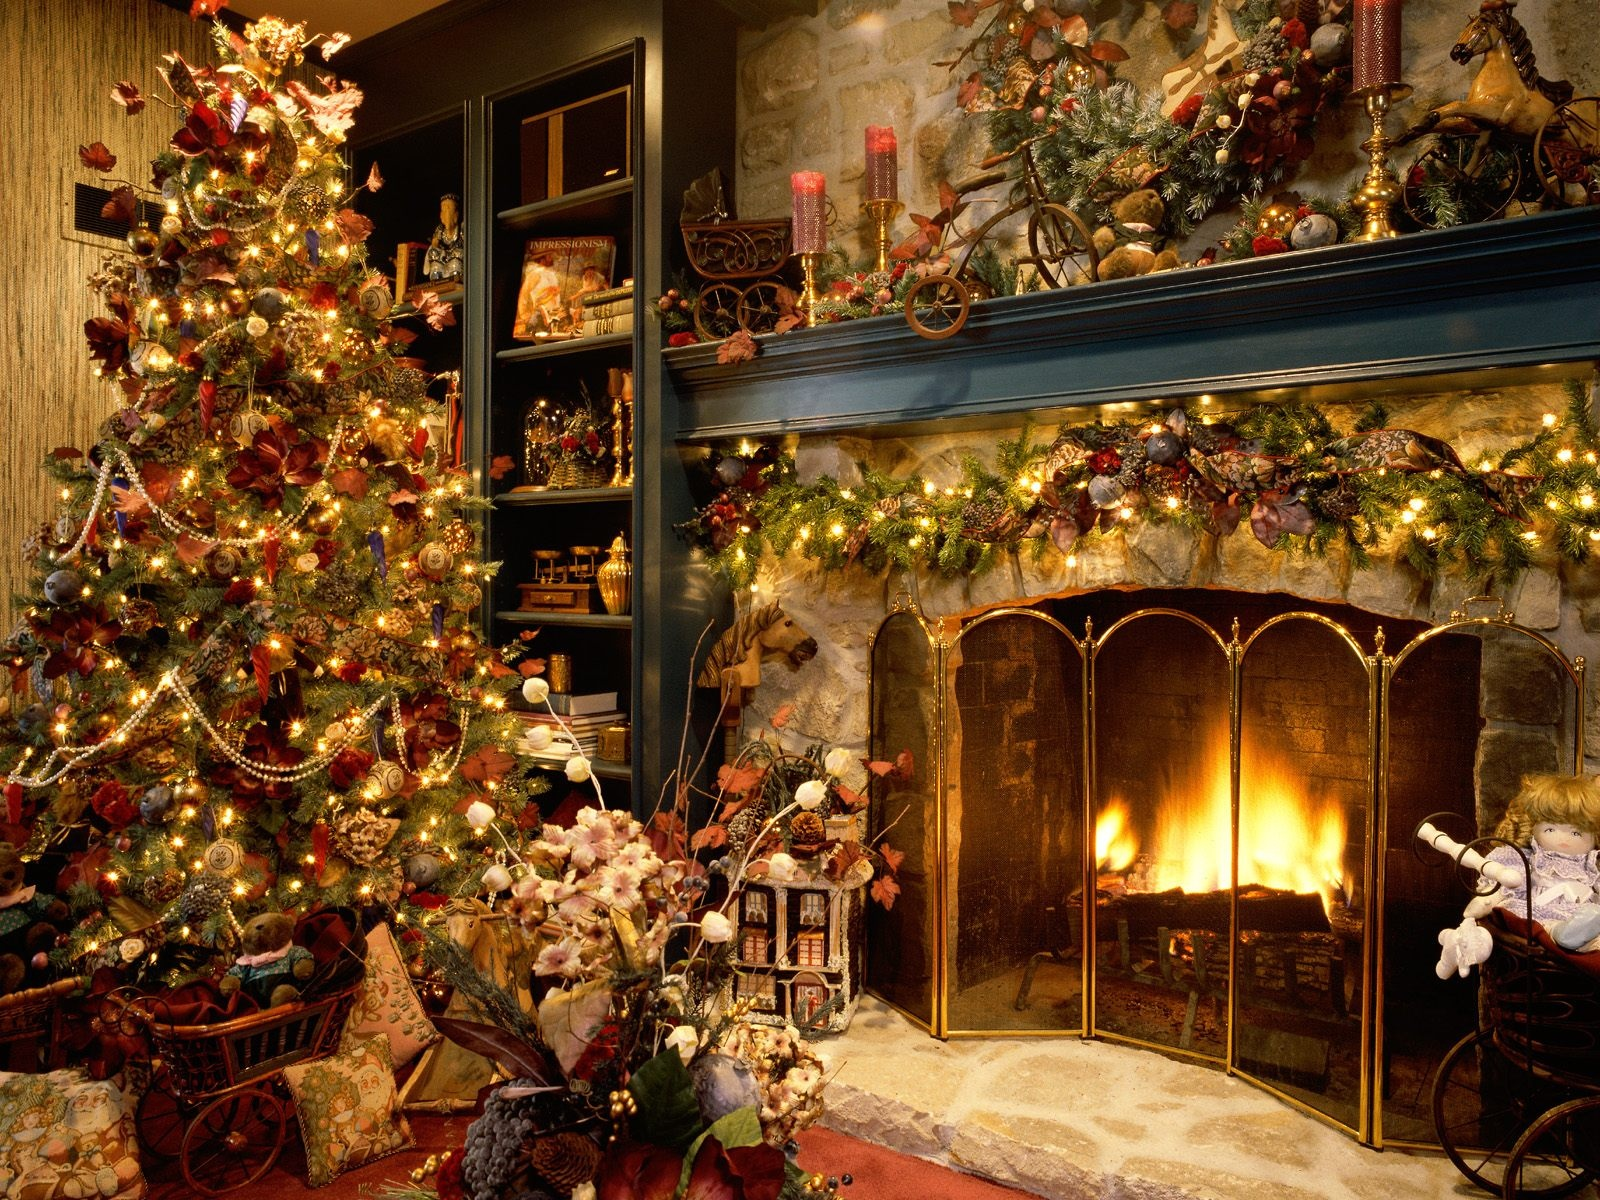 Christmas decoration wallpapers cool christian wallpapers for Beautiful wallpaper home decor